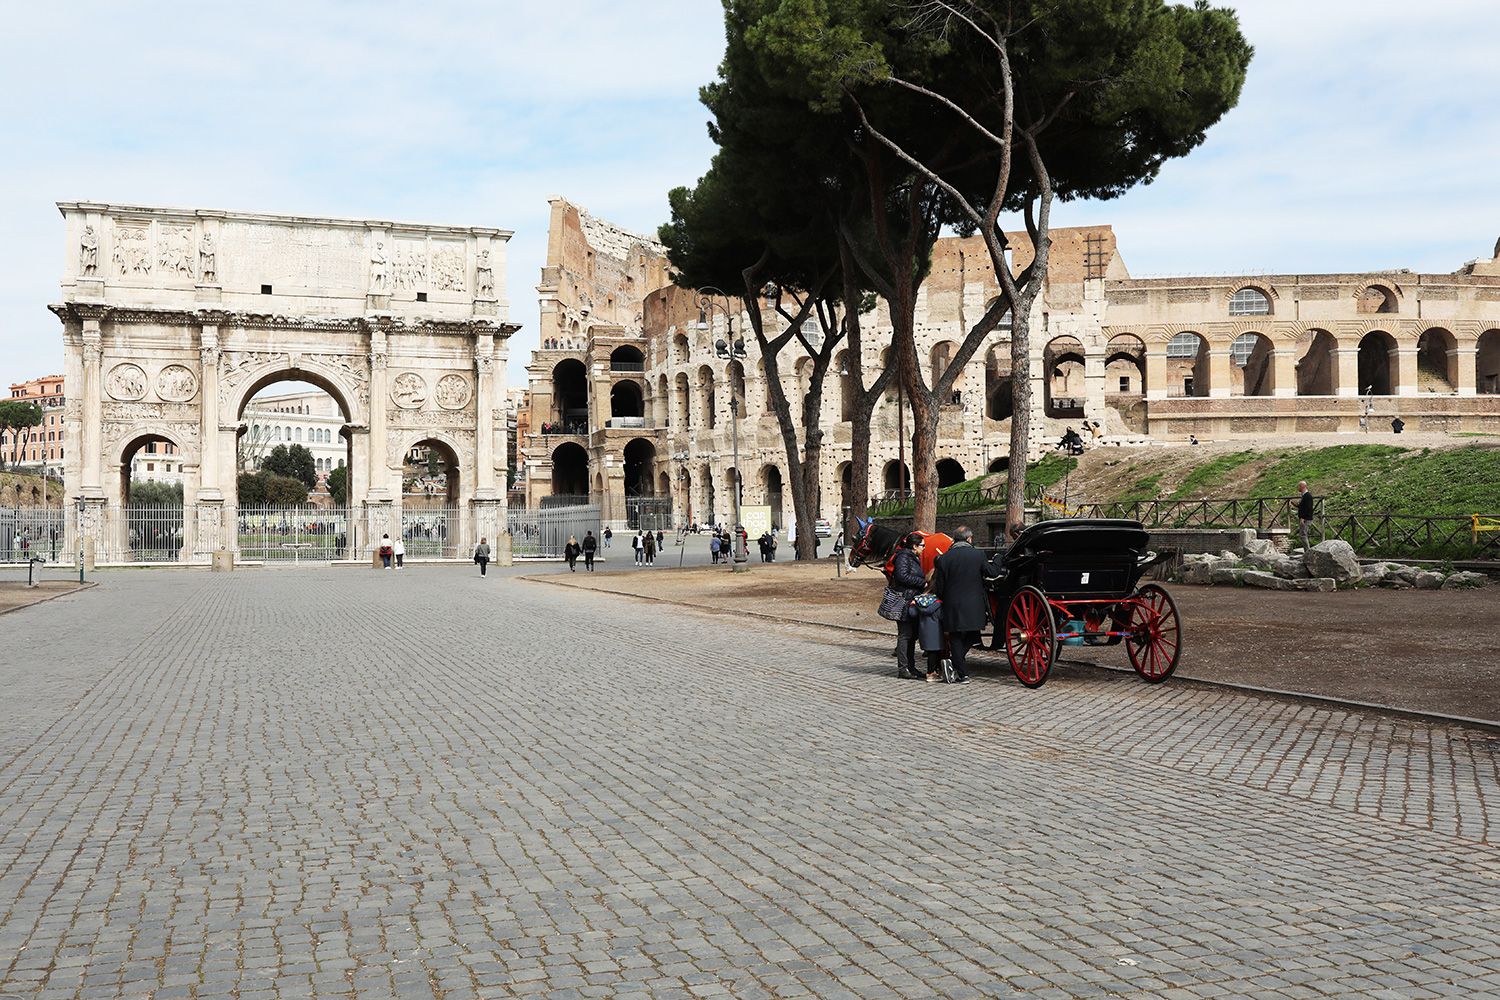 The square in front of the Colosseum, which is usually crowded with hundreds of tourist stands almost empty on March 5, 2020 in Rome, Italy